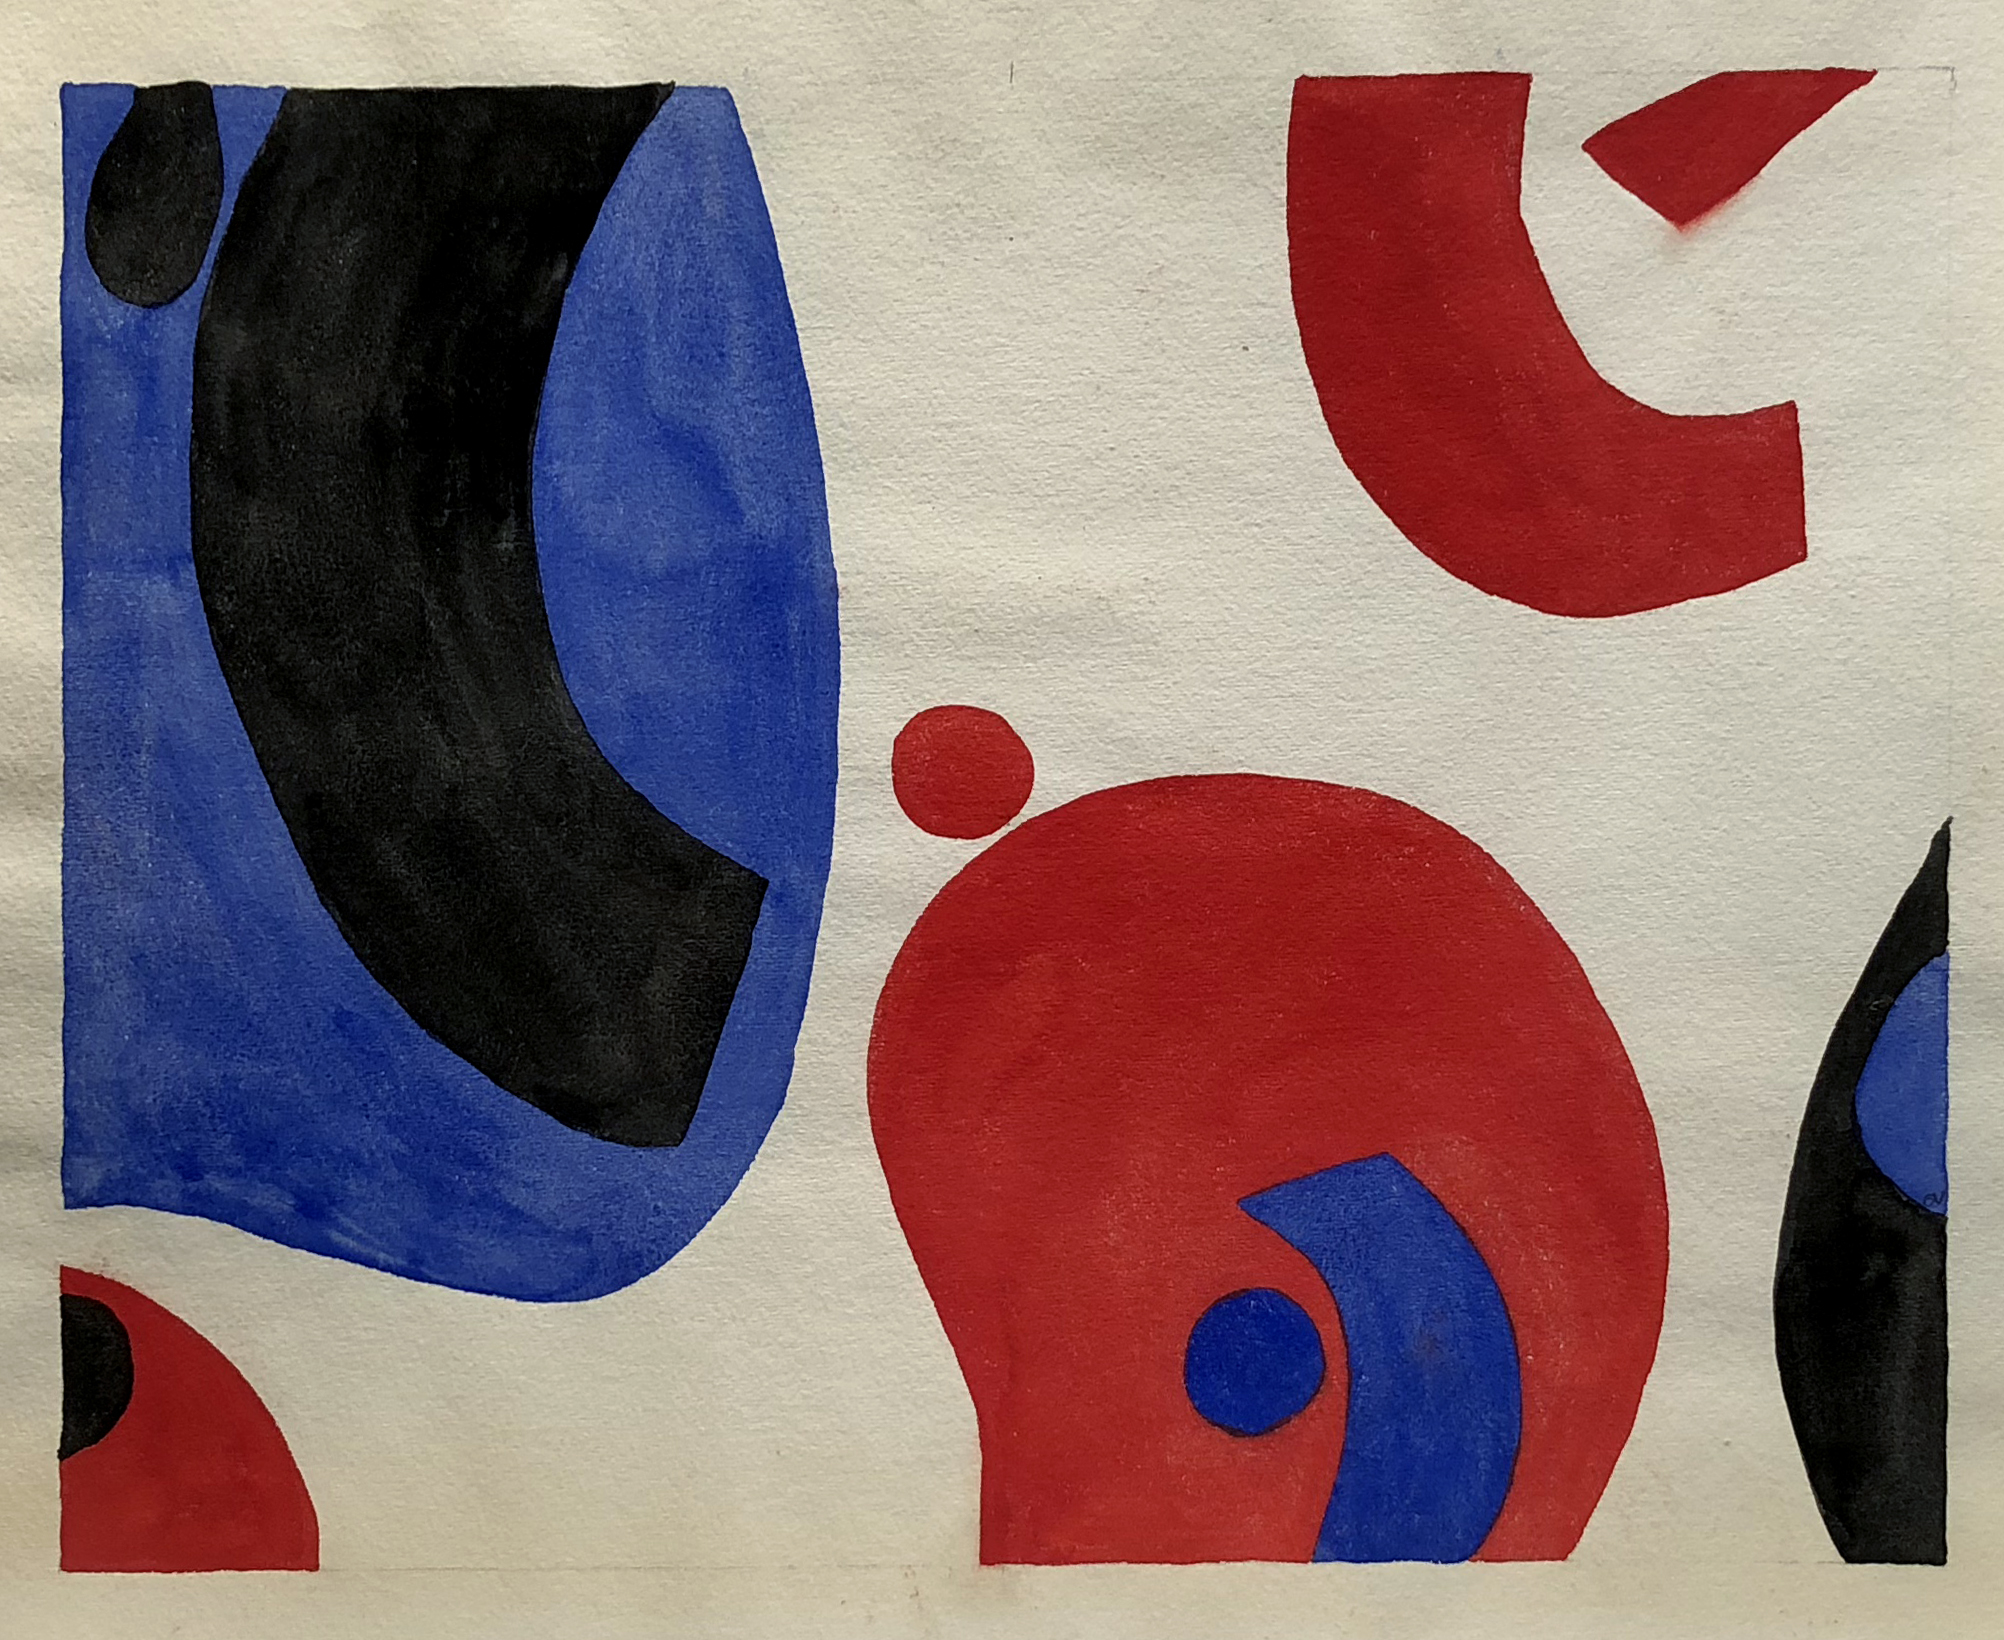 Ocean Motion, Watercolor on Paper, 19 x 24 inches, 1966